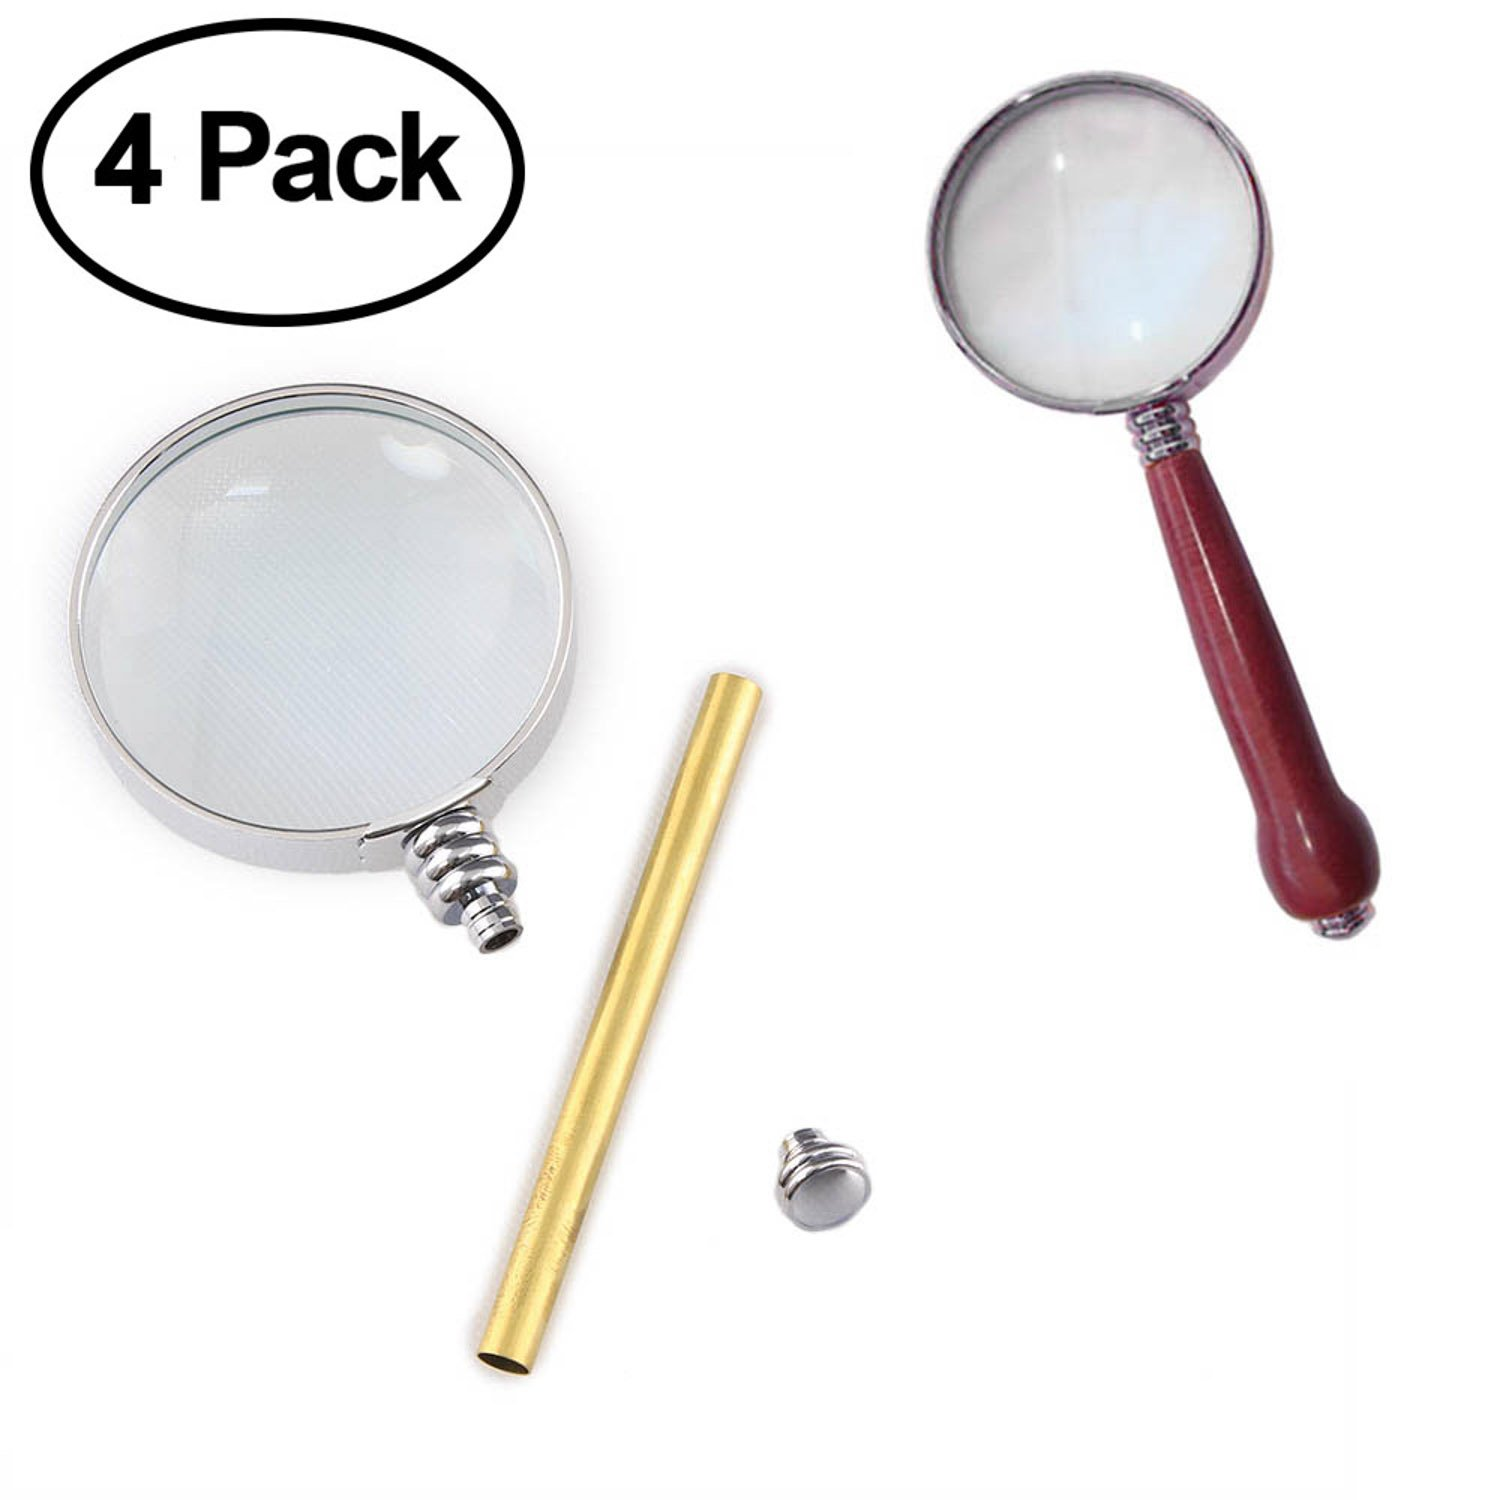 Magnifier Project Kit Chrome 4 Pack Legacy Woodturning